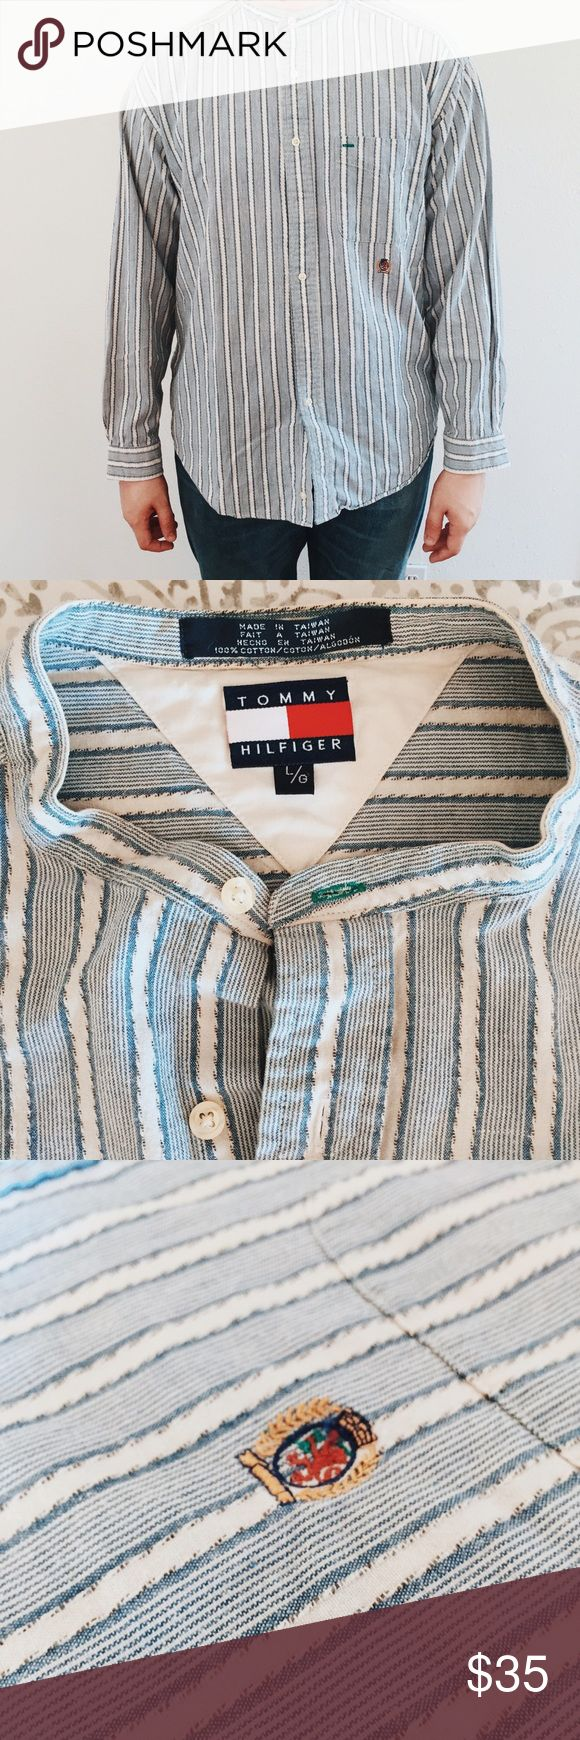 Vintage Tommy Hilfiger Button Down Great condition! Mandarin collar adding an funky spin on your basic button down! Tommy Hilfiger Shirts Casual Button Down Shirts